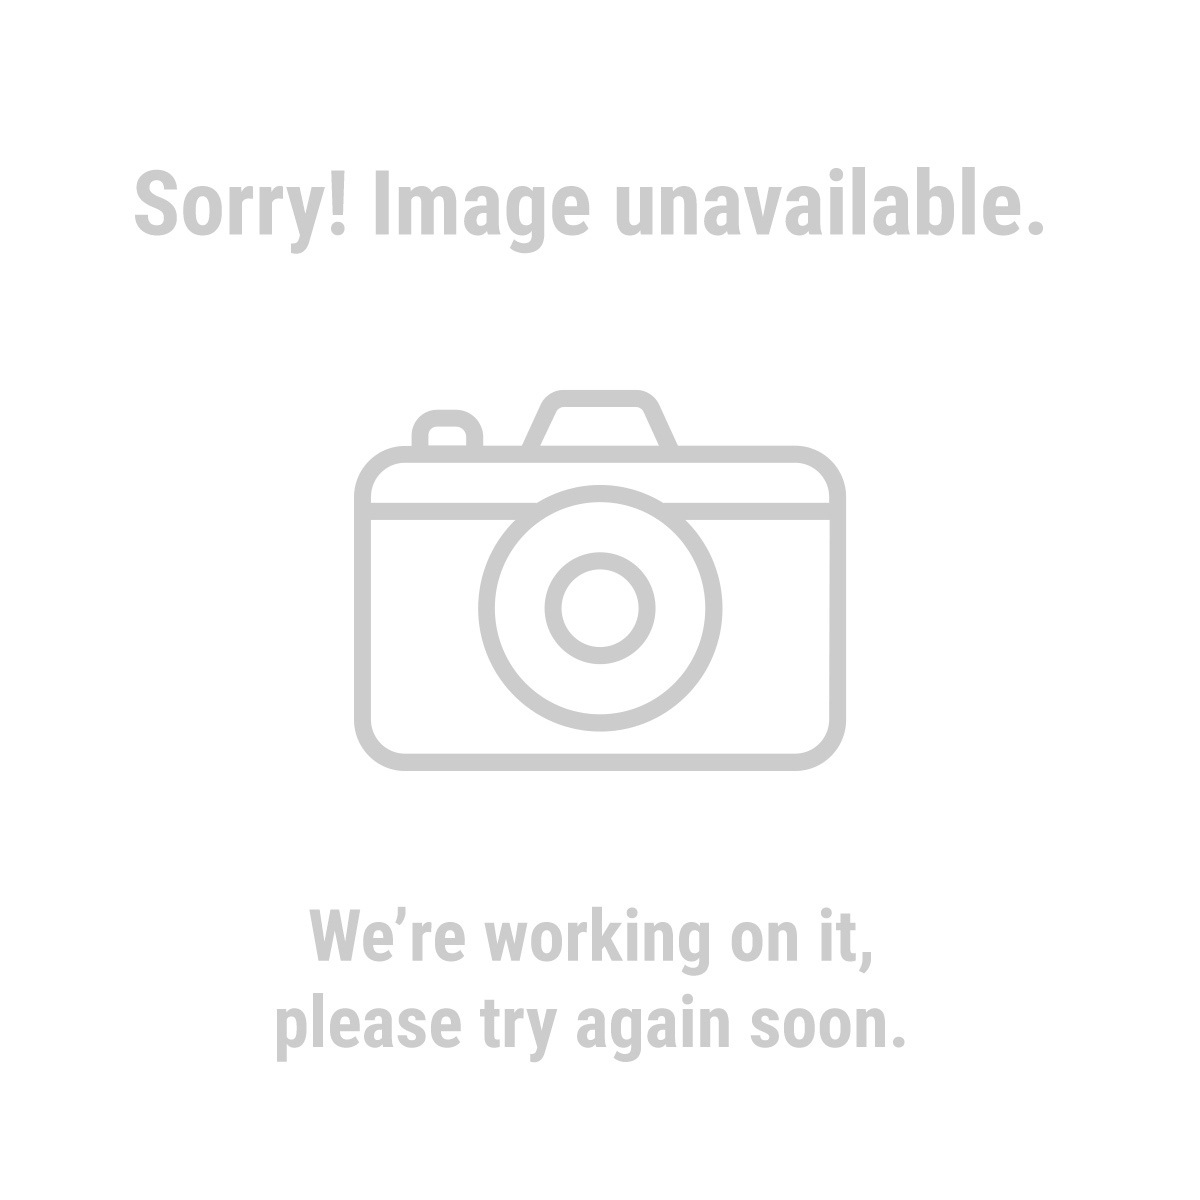 Badland Winches 61346 9000 lb. Off-Road Vehicle Winch with Automatic Load-Holding Brake